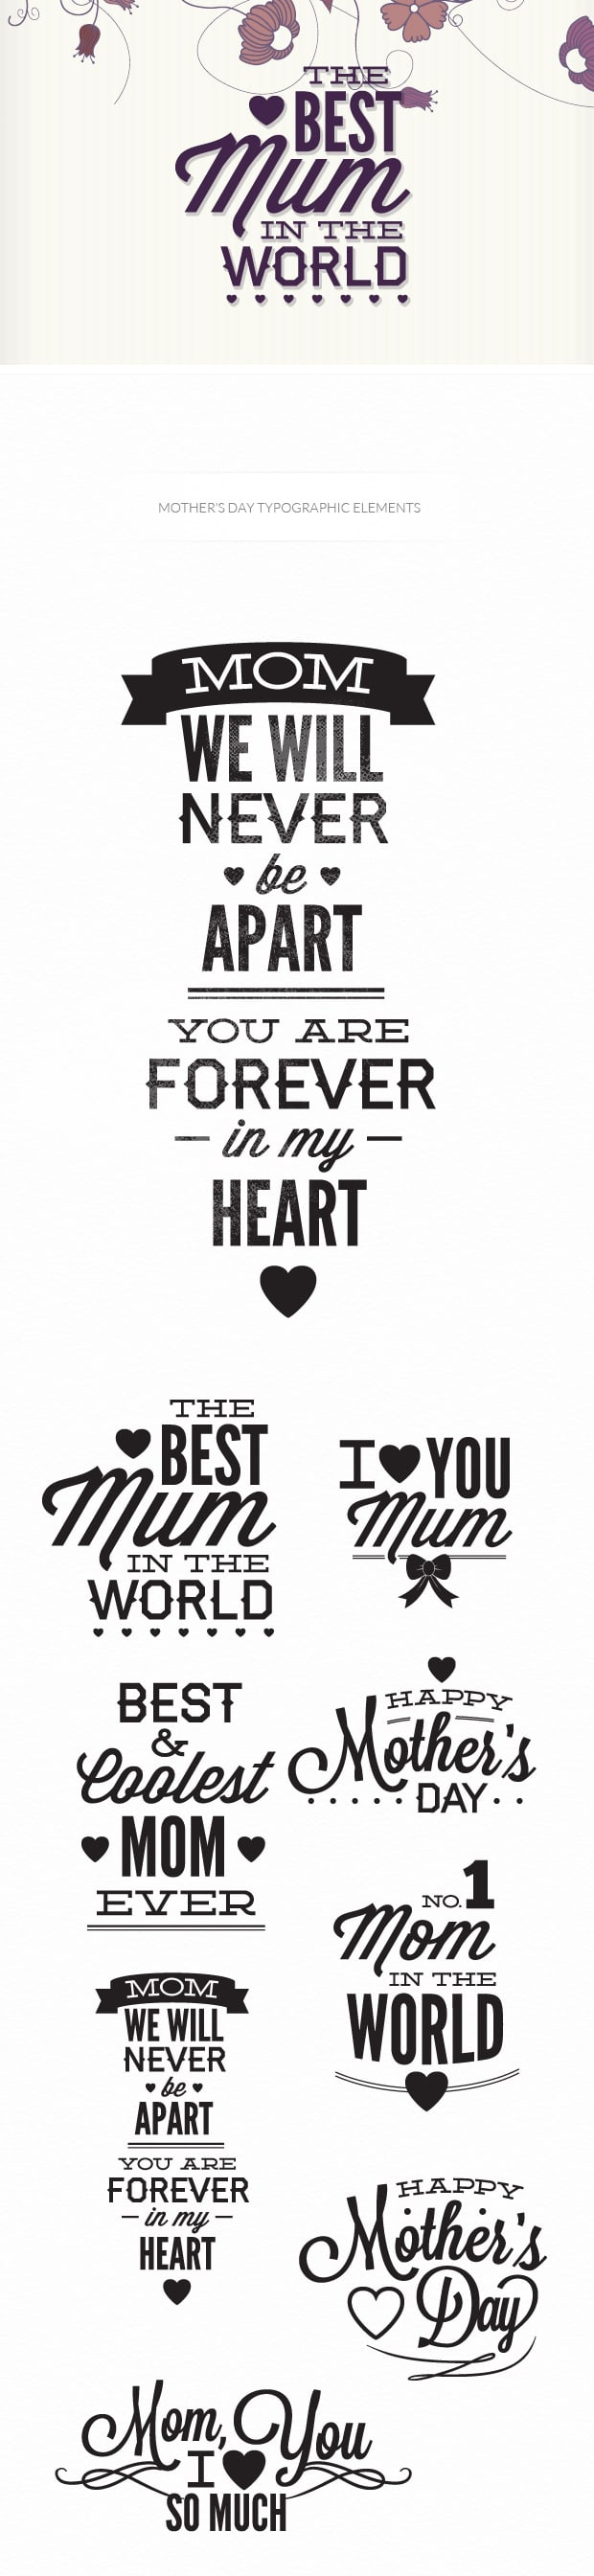 Mother's day typographic elements TypeZilla motherday preview